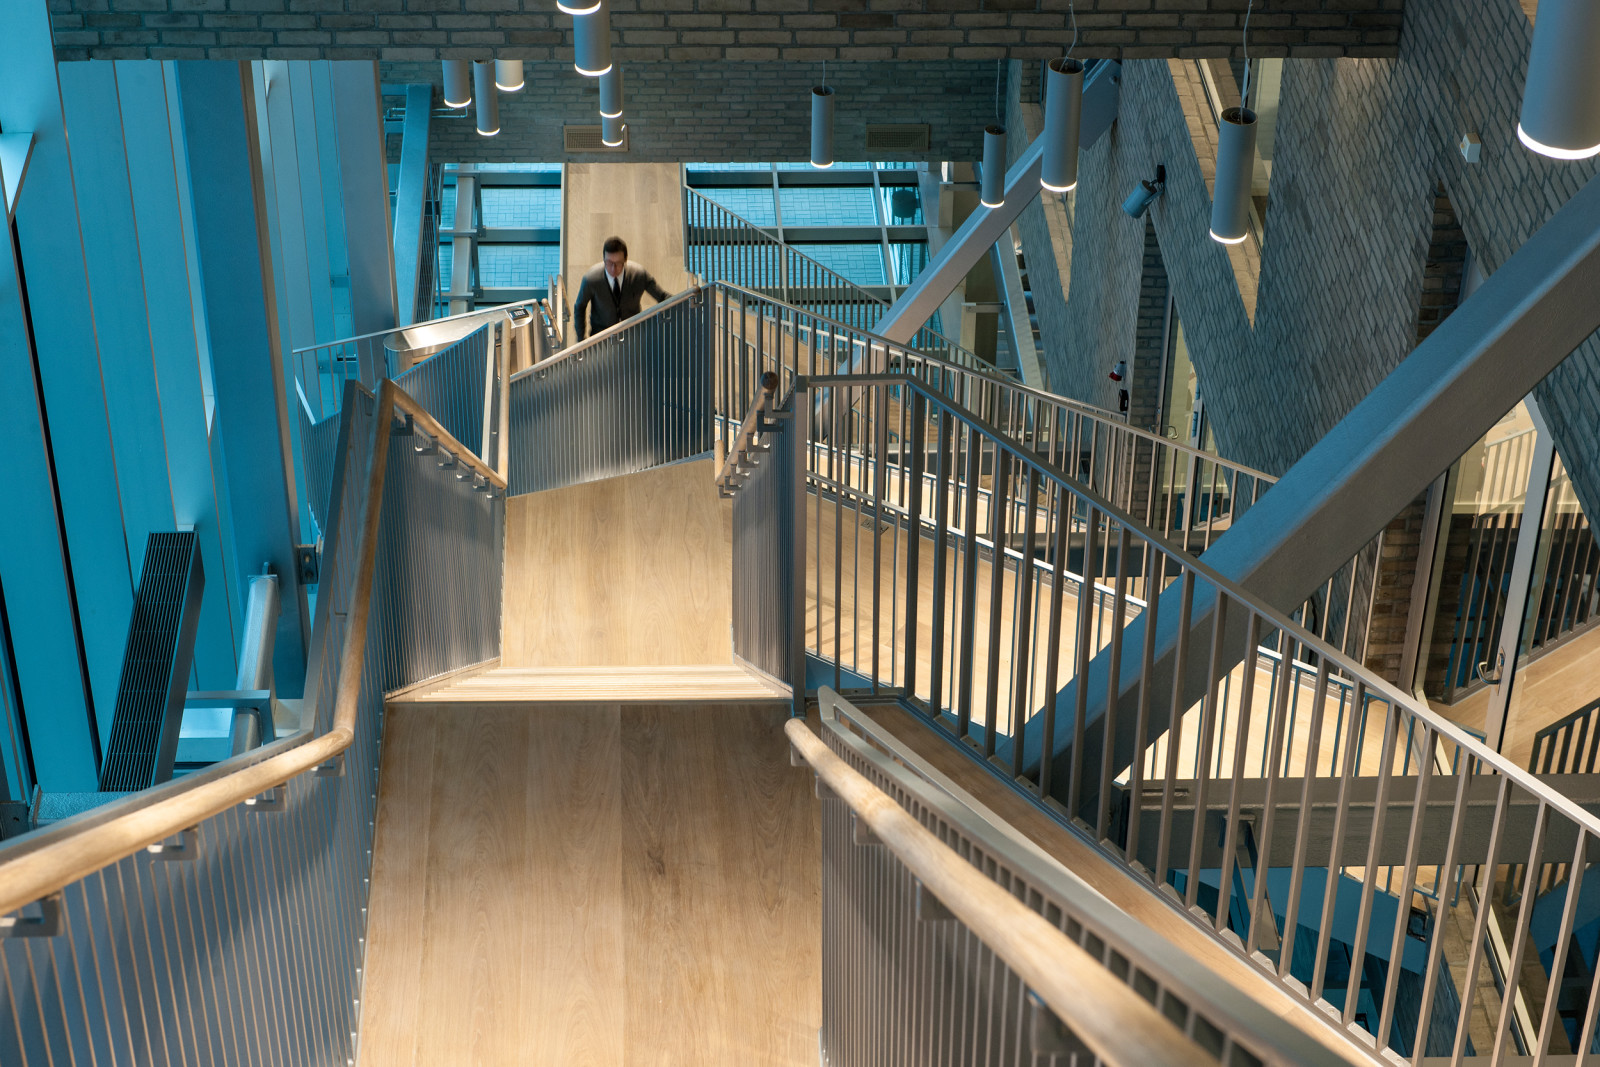 Dark, Arkitekter, Dark Arkitekter, Architects, Dark Architects, MVRDV, Bjørvika, Barcode, Oslo, Norge, Norway, Urban design, Office, Kontor, Pikselert, Pixelated, interior, interiør, trapp, stair, staircase